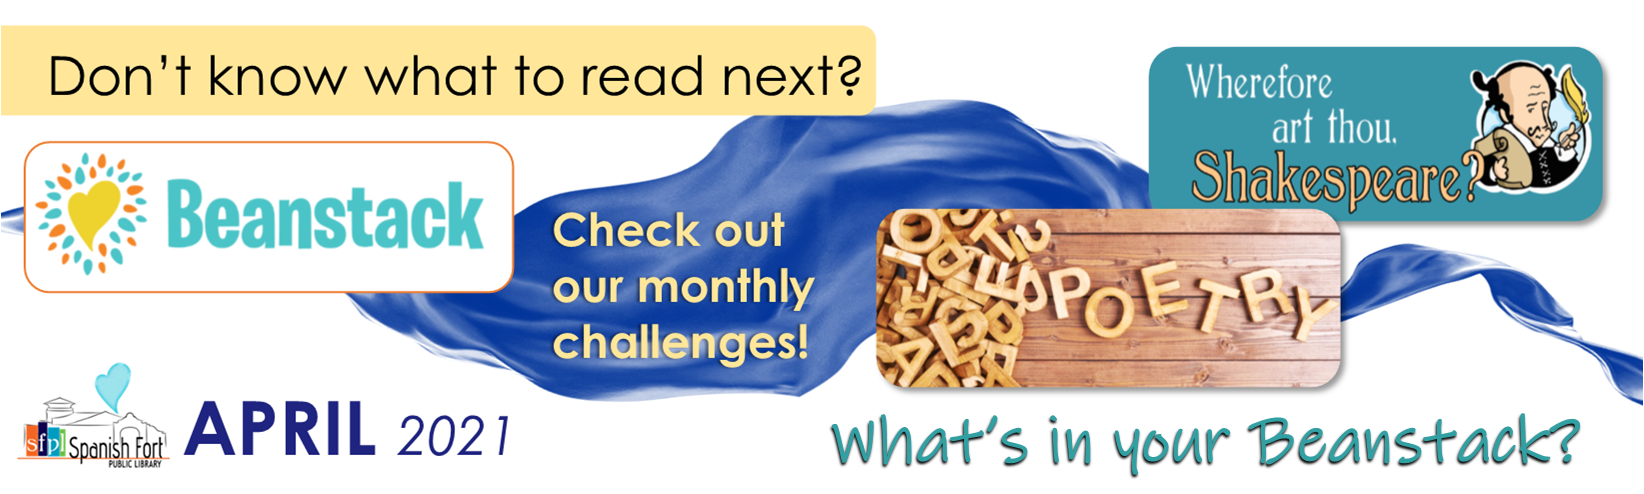 Don't Know what to read next? Check Out our monthly challenges for all ages on Beanstack! Click the link!